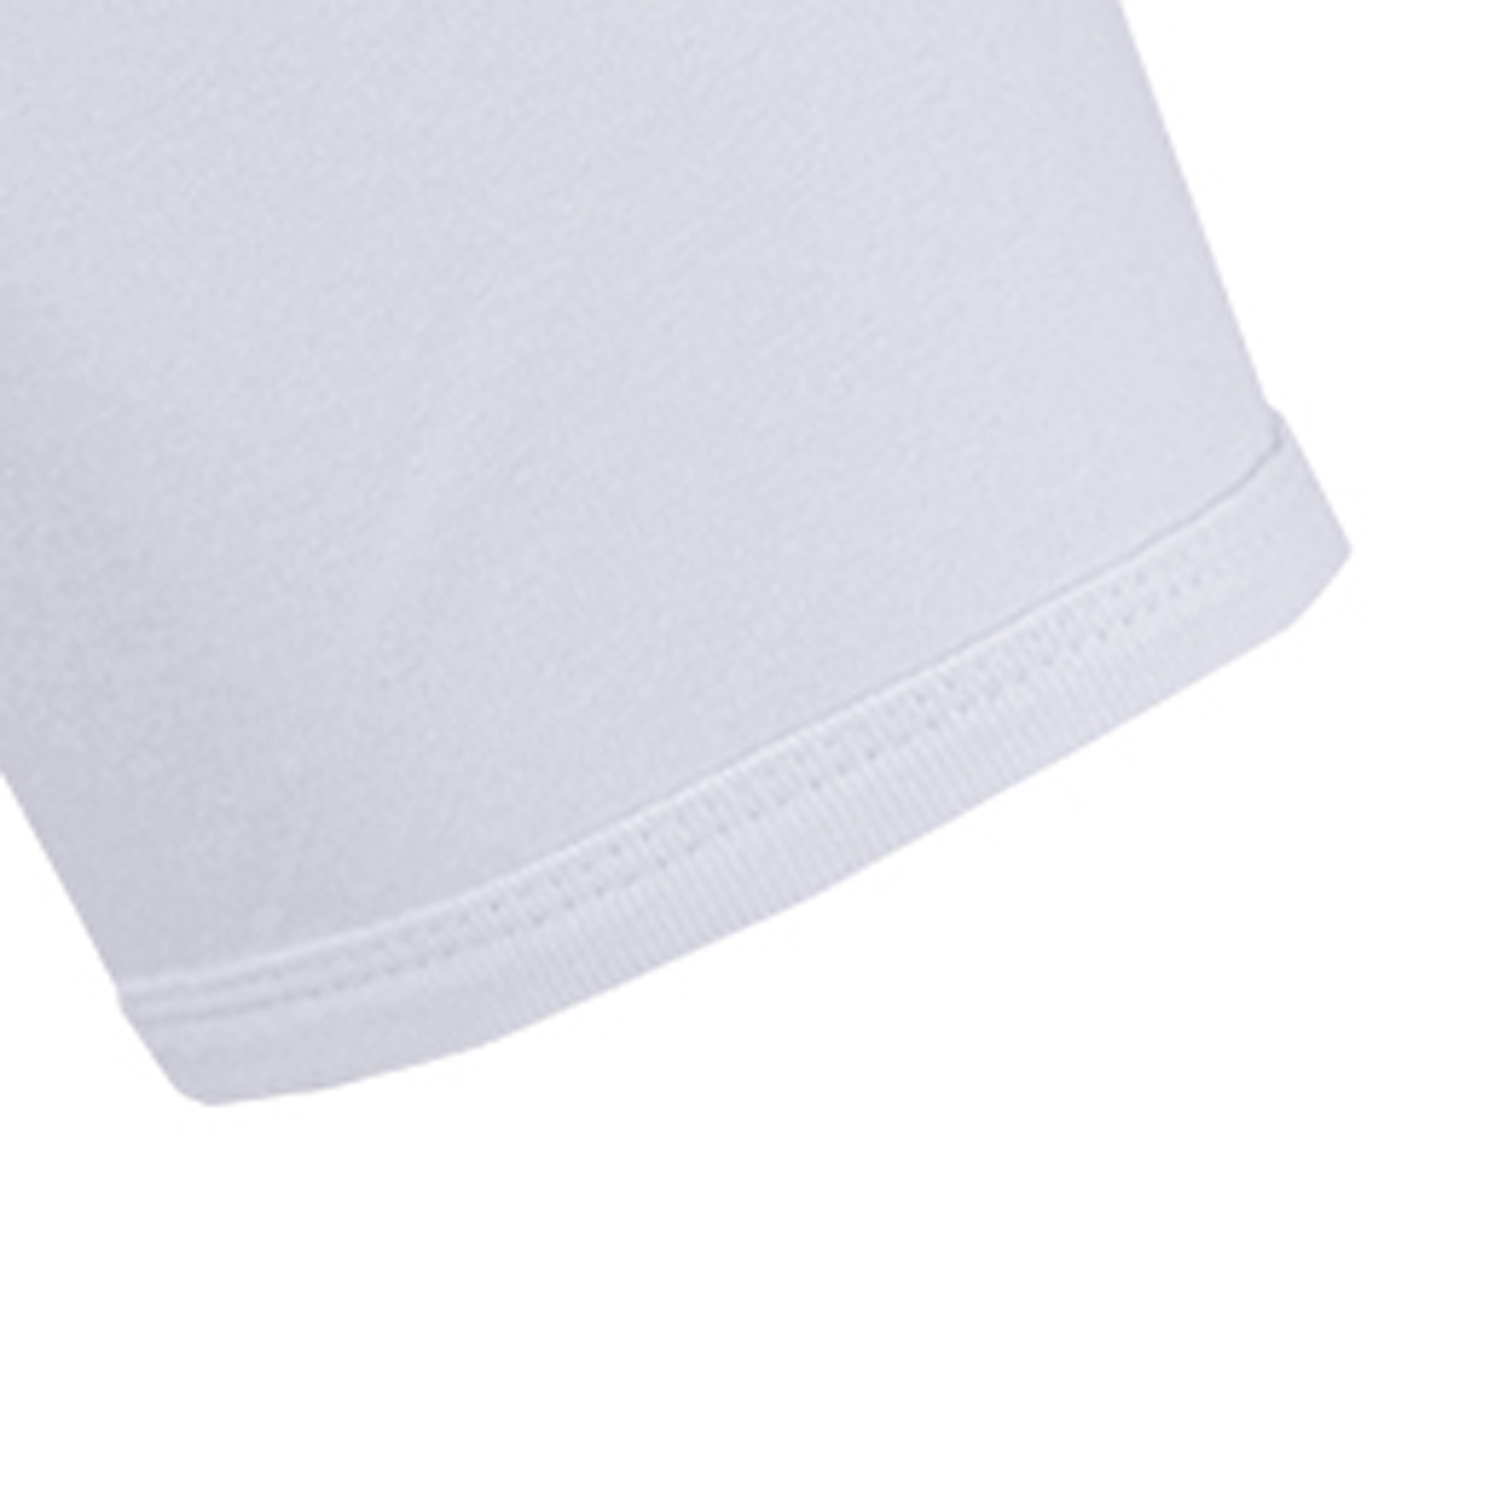 Detail Image to White ROYAL t-shirt by ADAMO in fine rib up to plus size 20